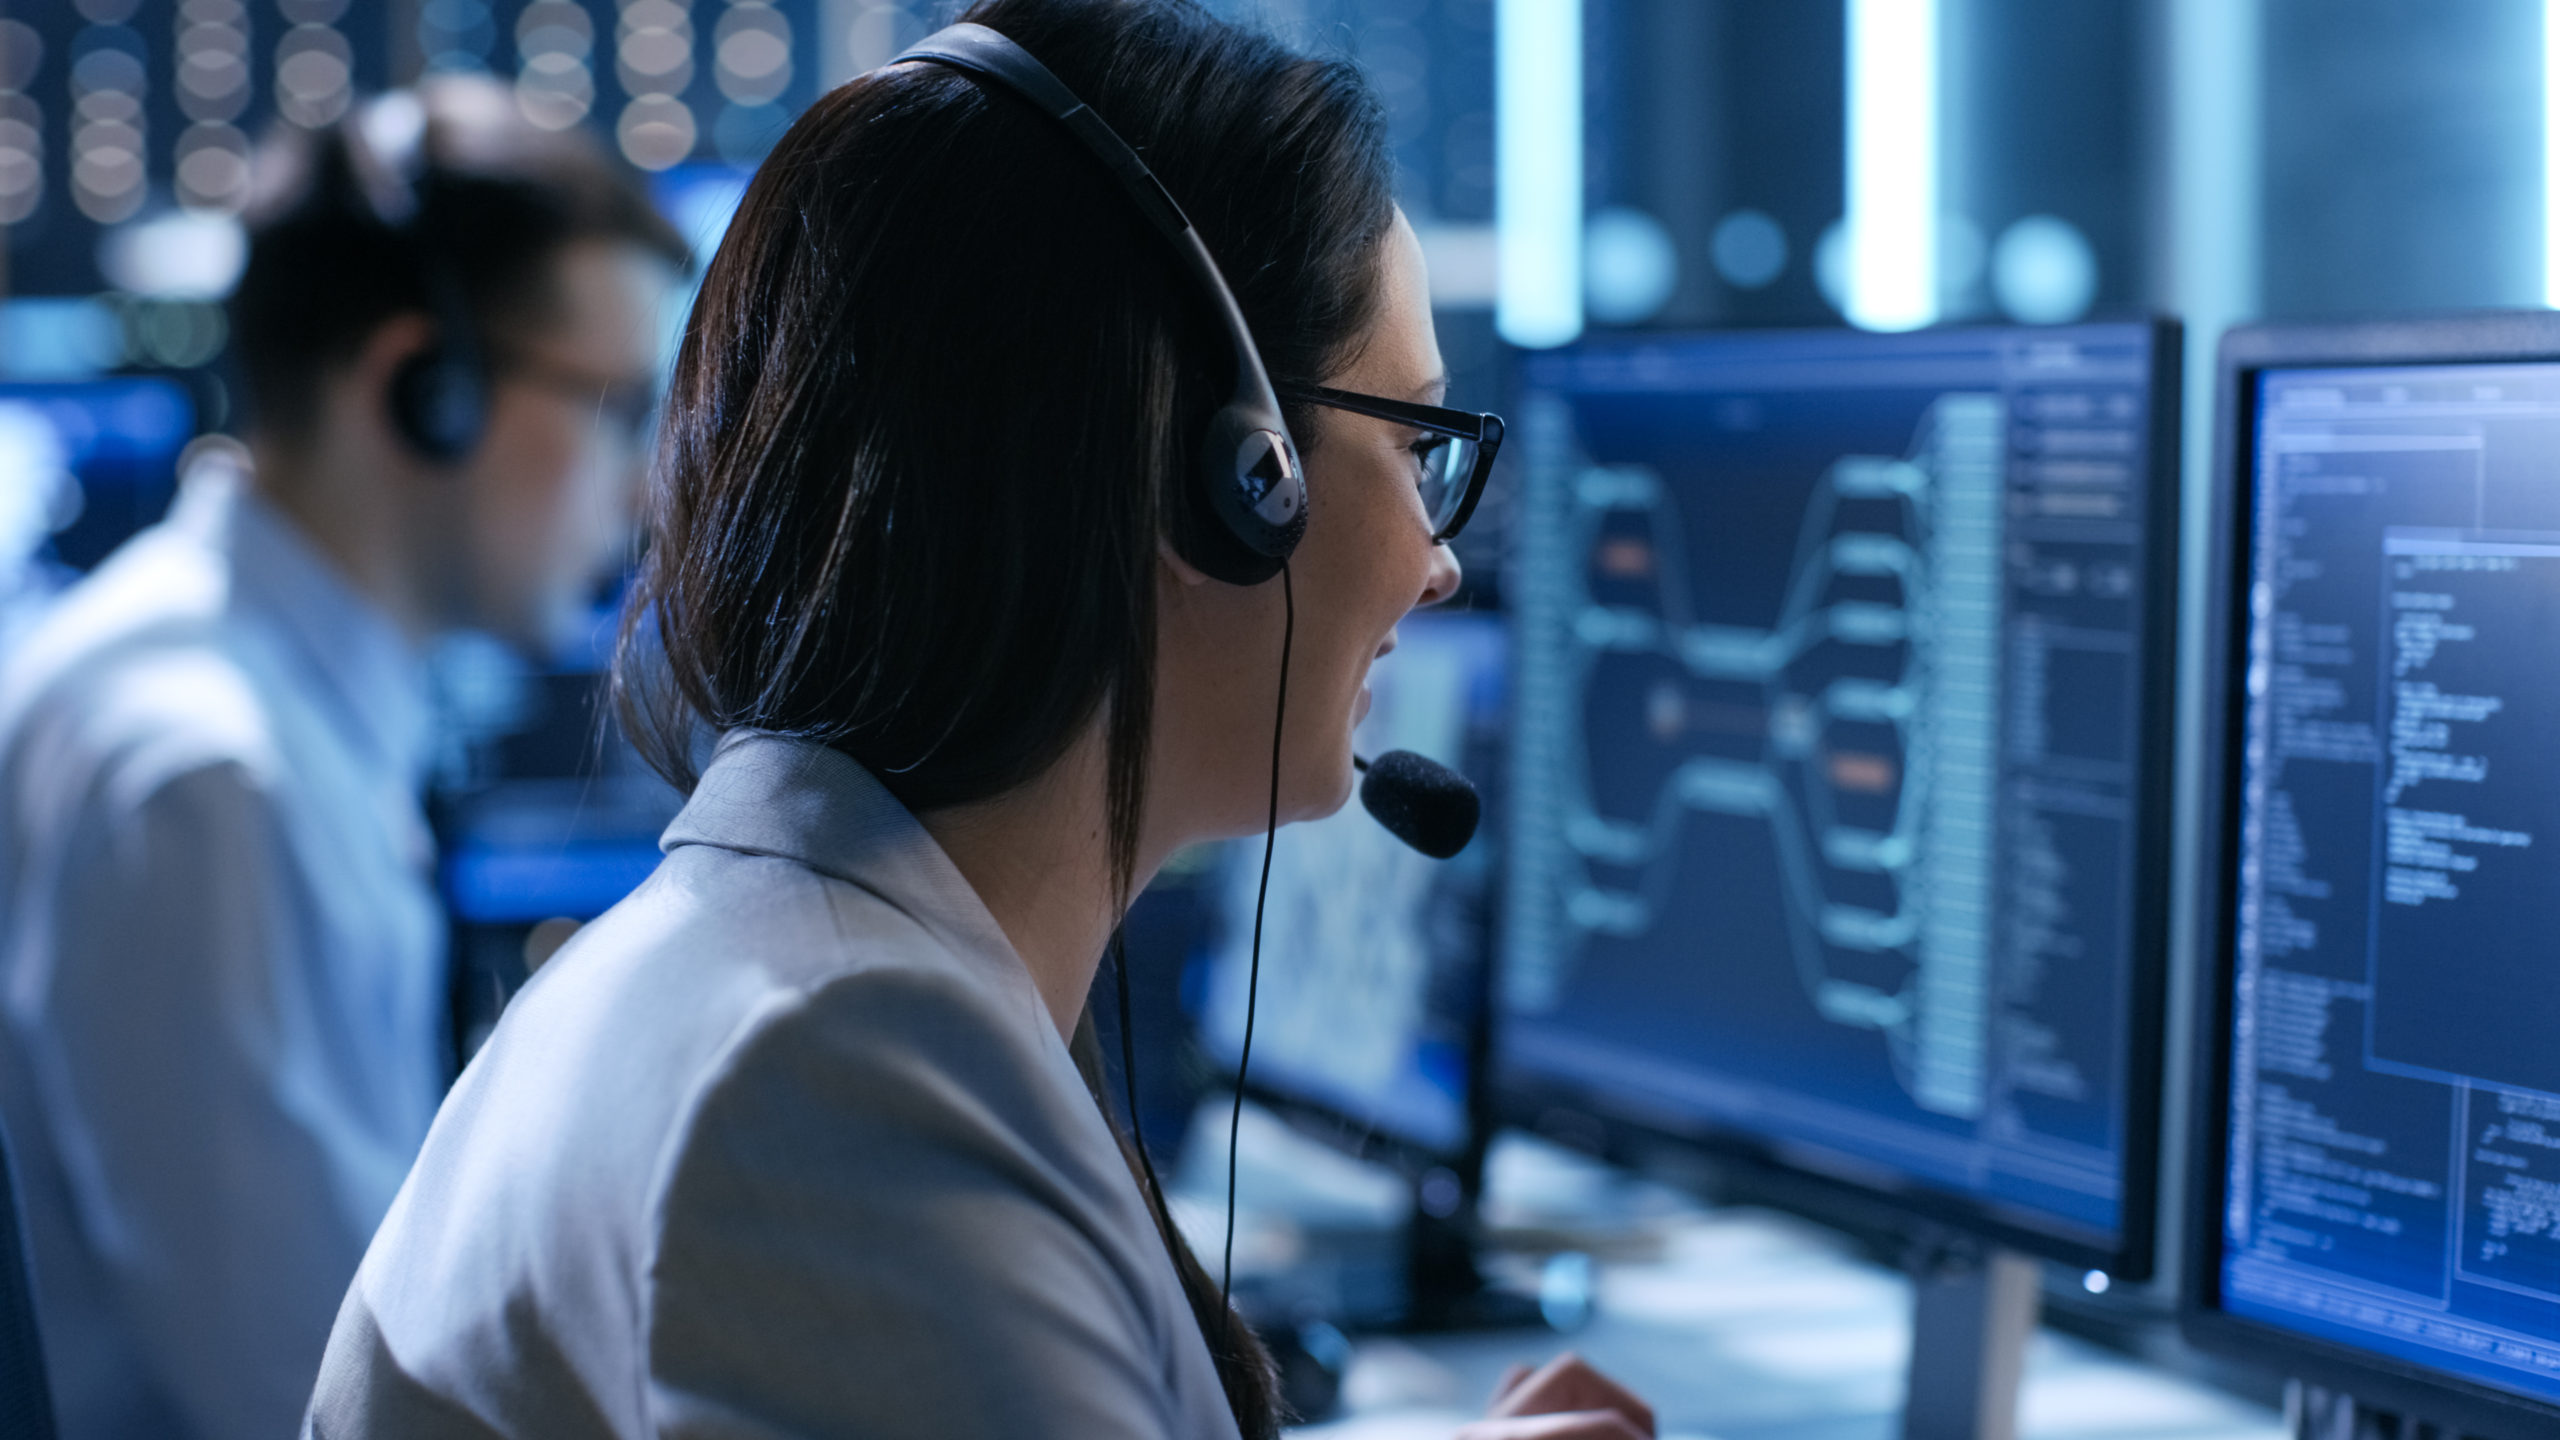 In the System Control Center Woman working in a Technical Support Team Gives Instructions with the Help of the Headsets. Possible Air Traffic/ Power Plant/ Security Room Theme.